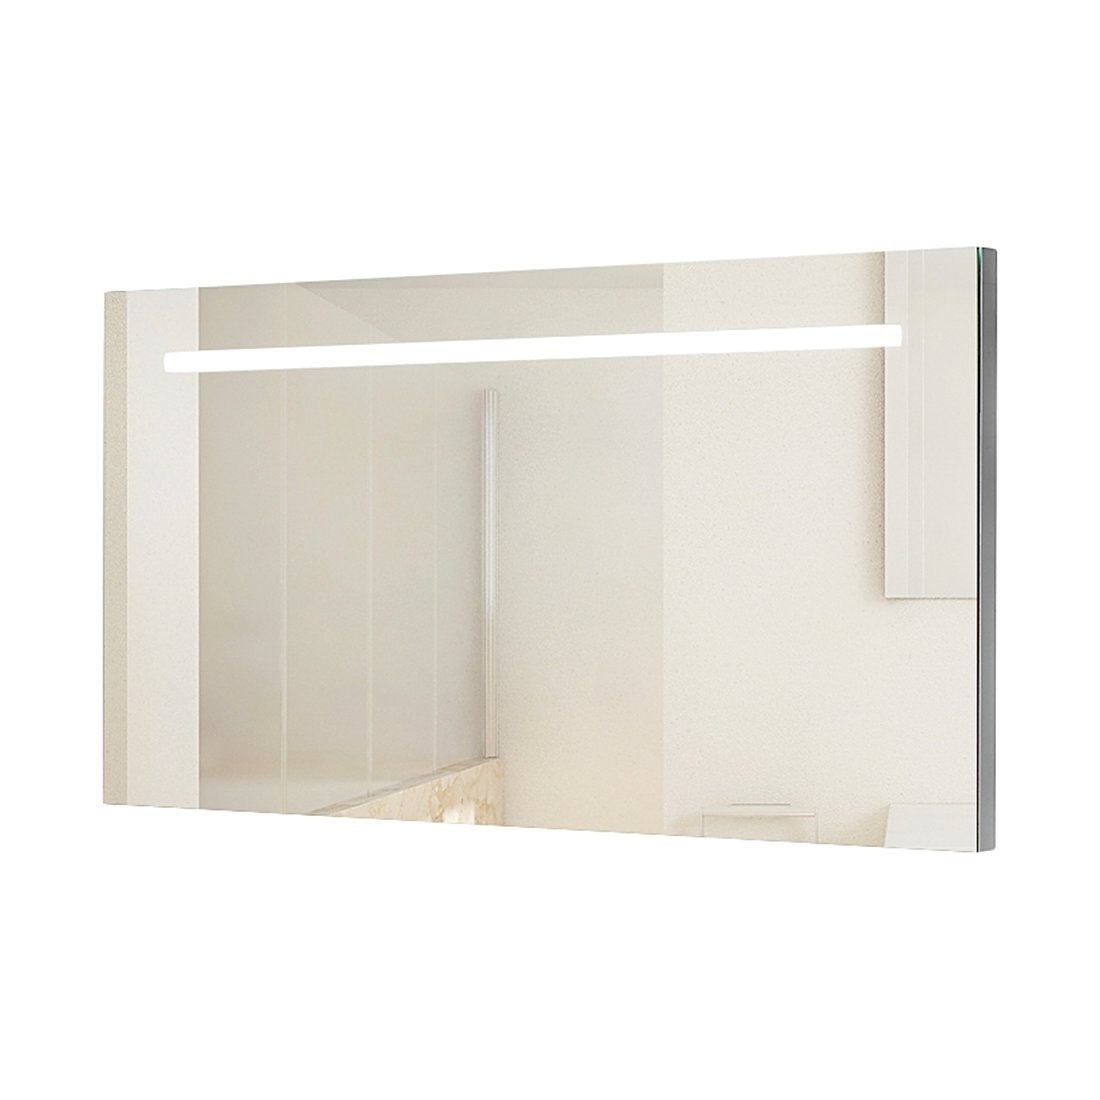 Wide and tall illuminated bathroom mirror with backlit effect